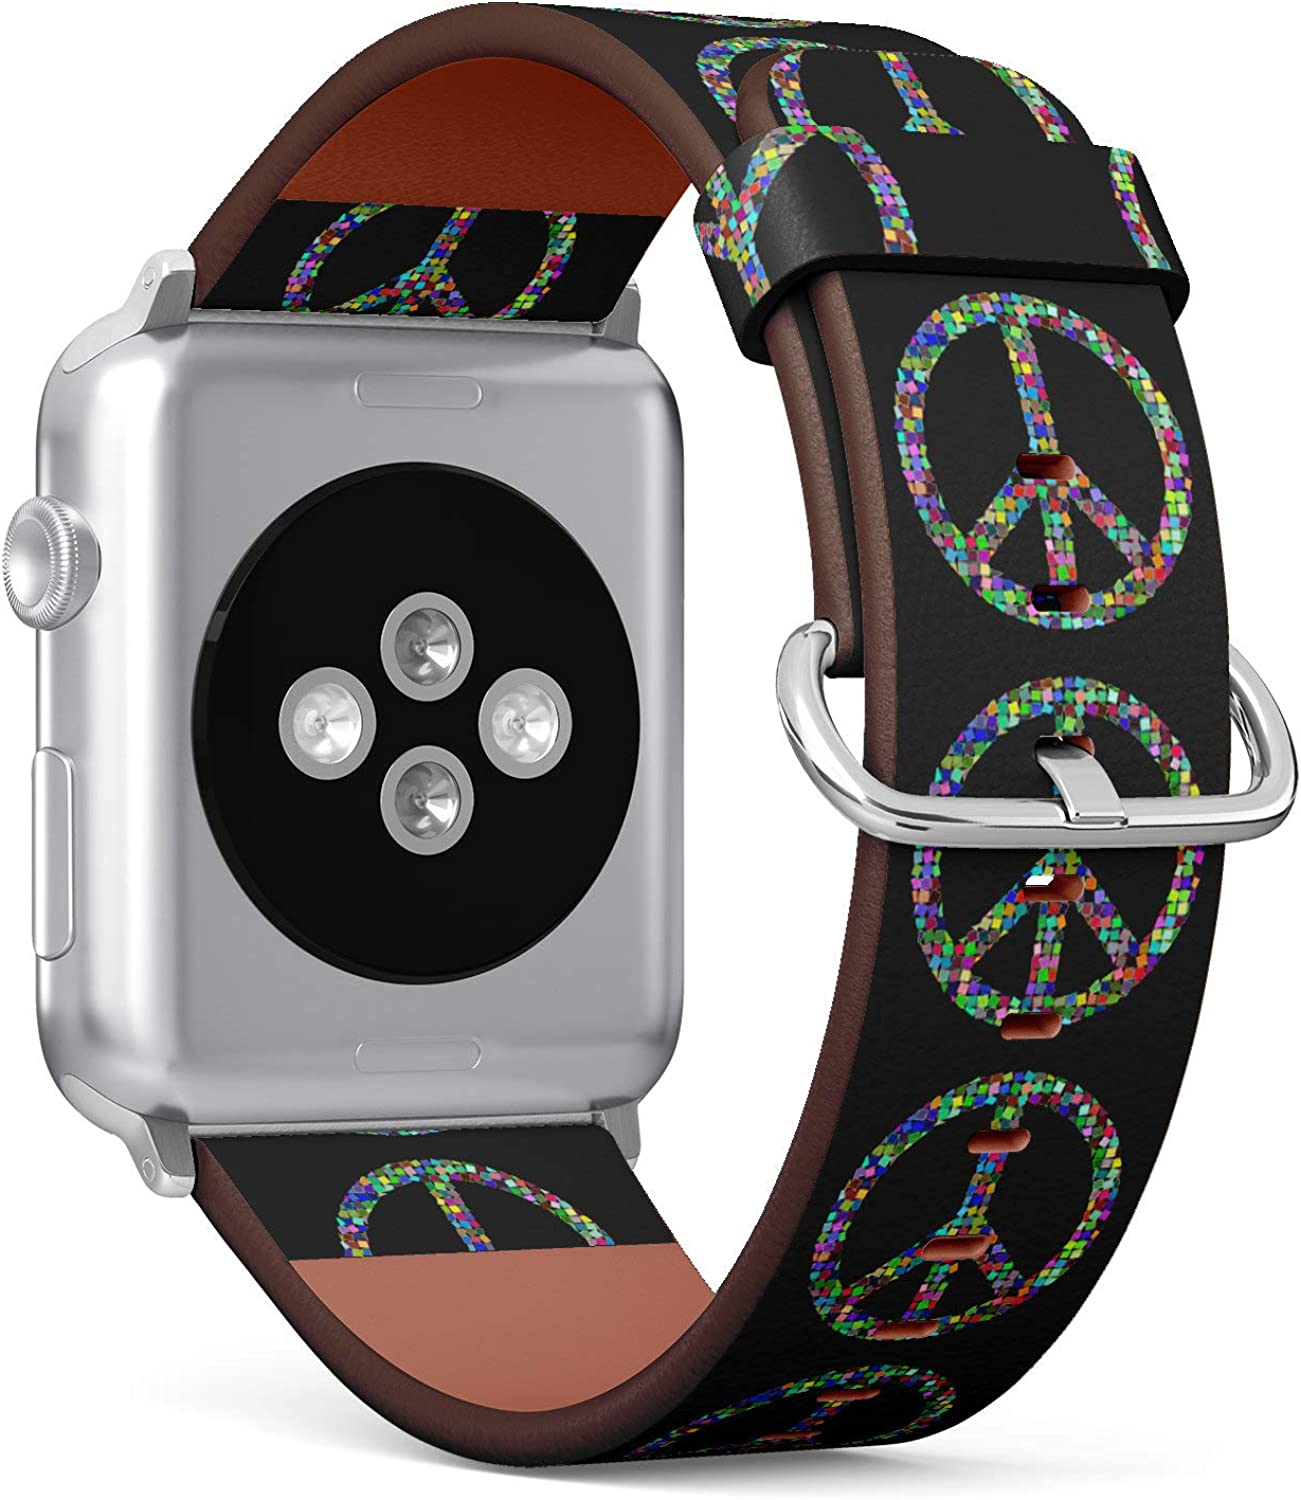 (Hippie Style Peace Sign) Patterned Leather Wristband Strap for Apple Watch Series 4/3/2/1 gen,Replacement for iWatch 38mm / 40mm Bands